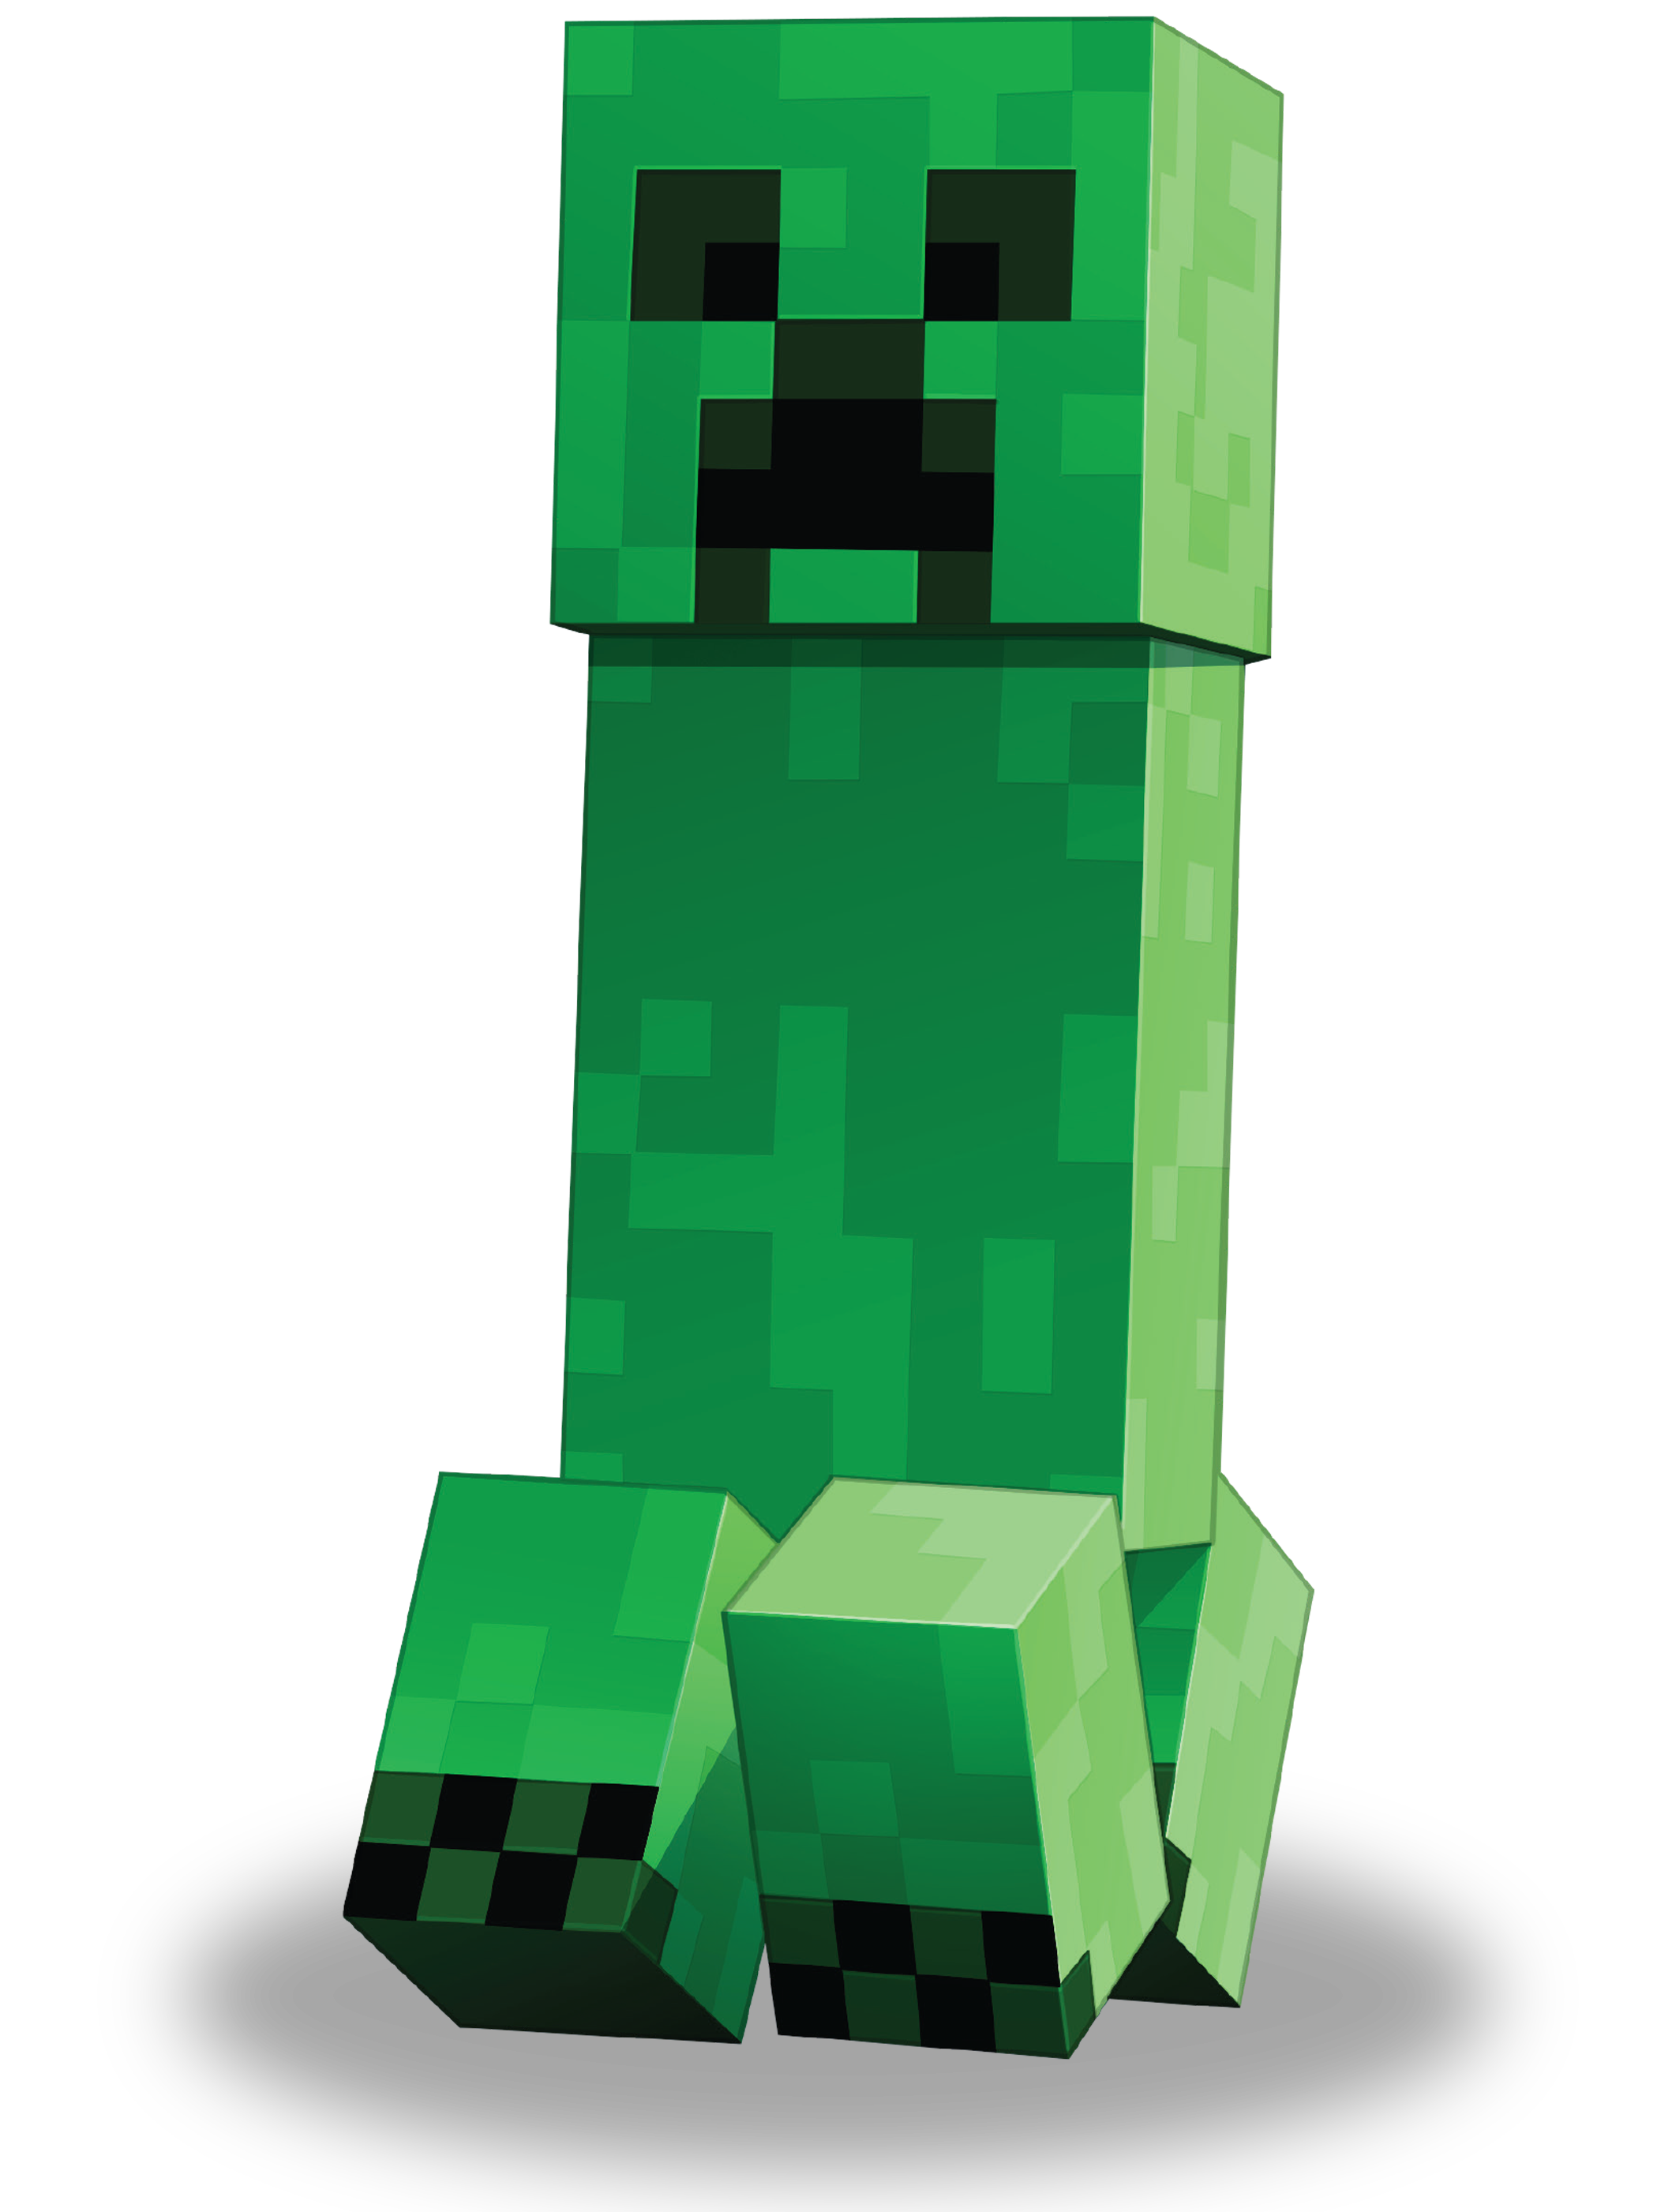 A Minecraft creeper